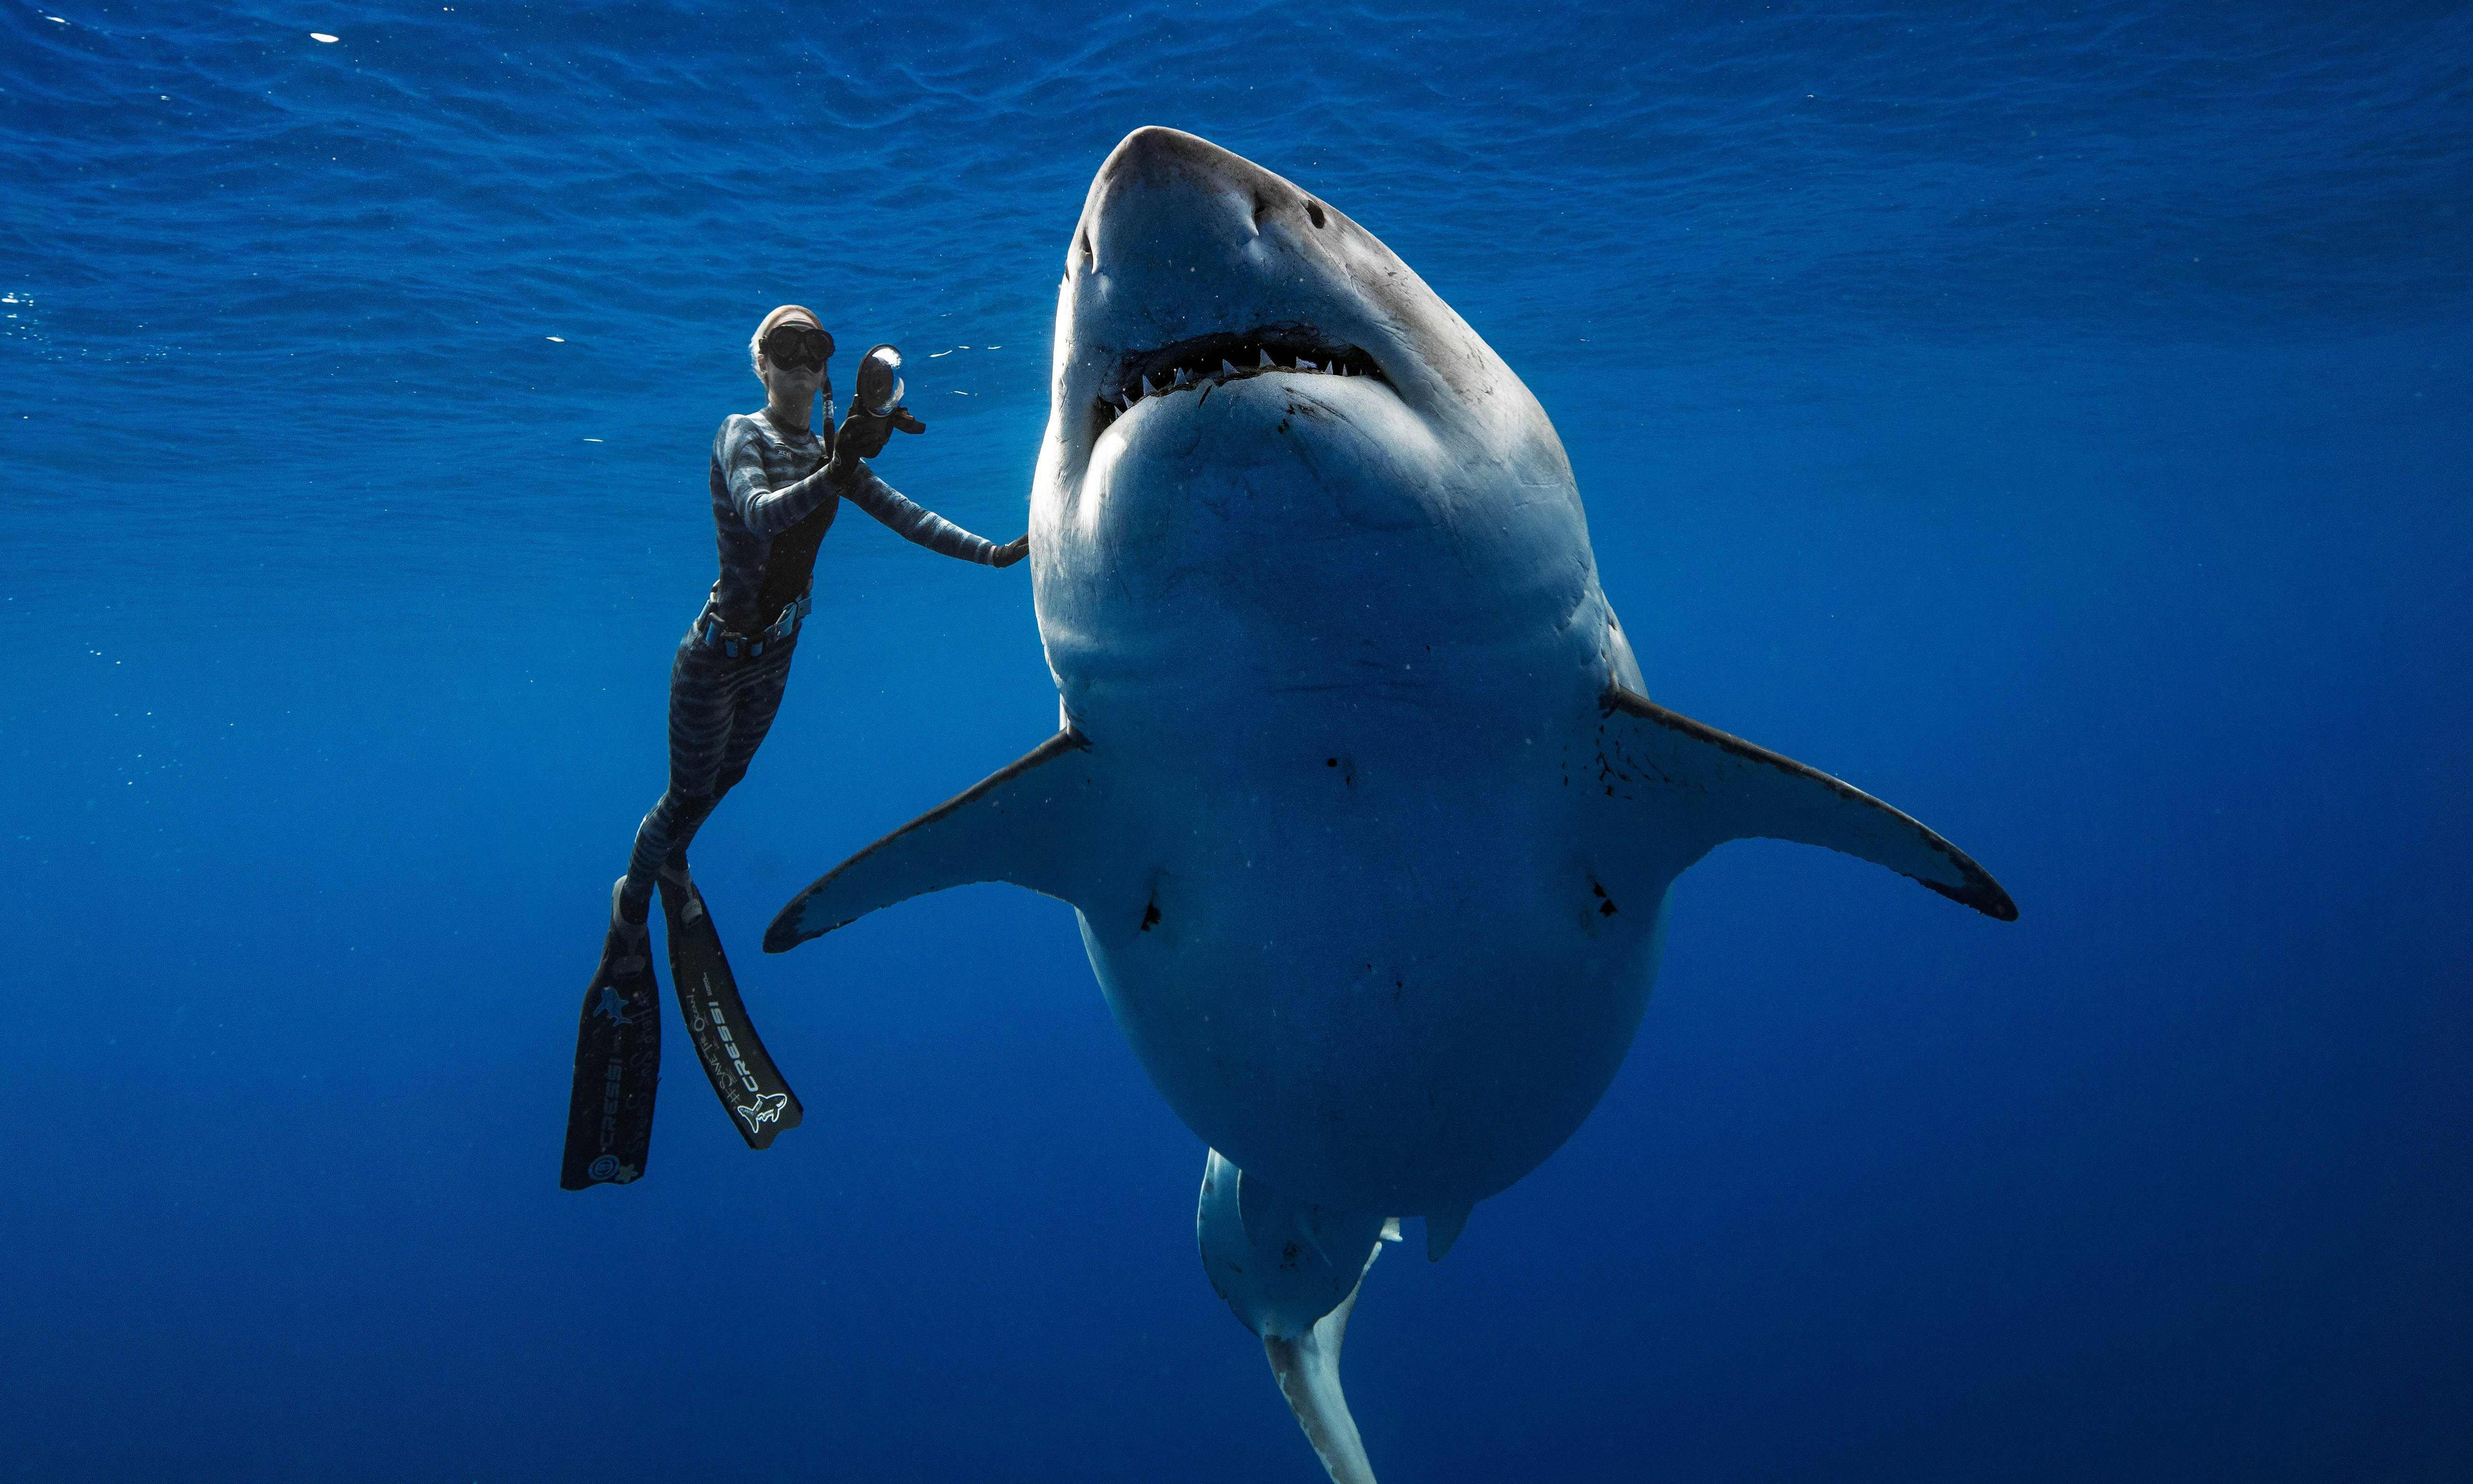 Diver filmed with huge great white: sharks must be 'protected not feared'